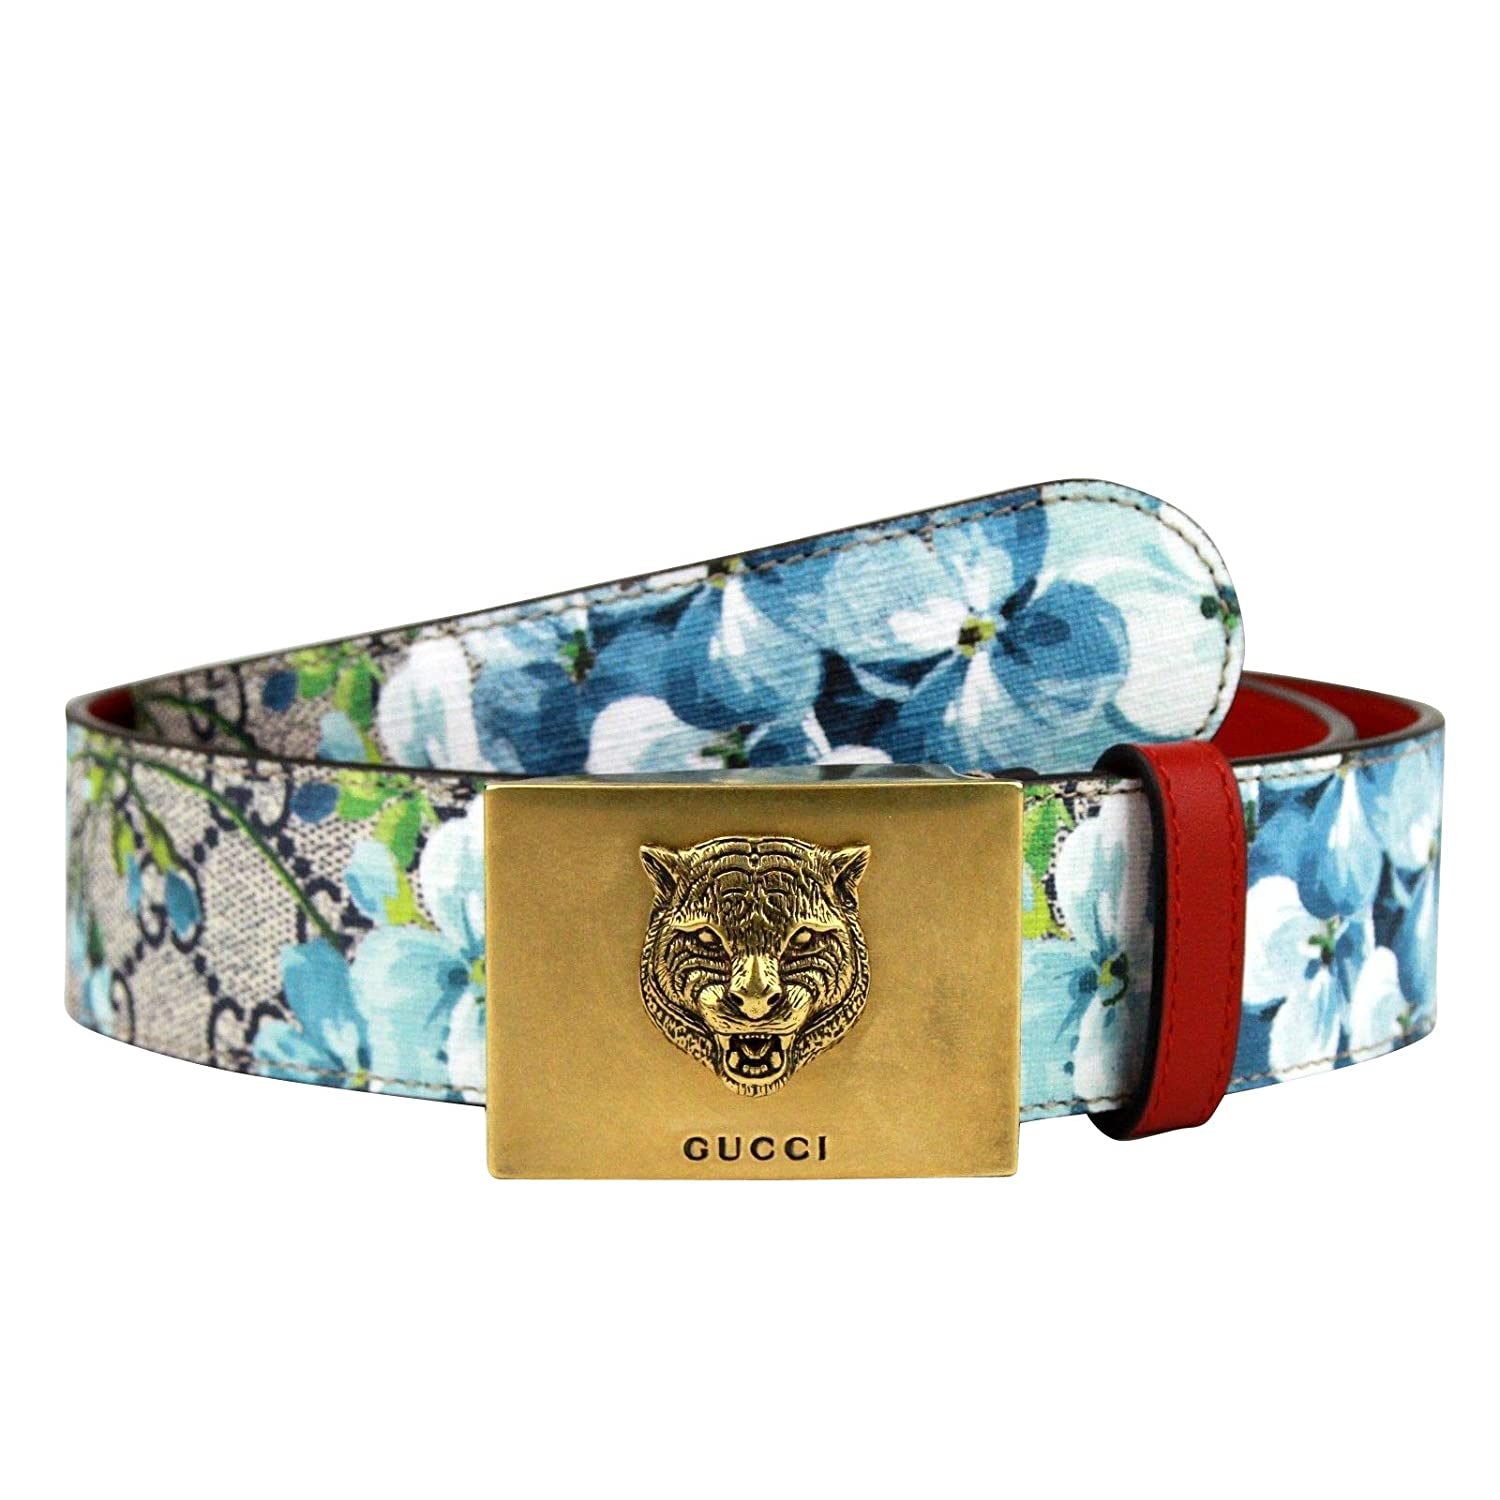 6655686ef5a Amazon.com  Gucci Unisex Gold Tiger Blue GG Supreme Coated Canvas Bloom  Print Belt Buckle 434559 8492 (80 32)  Clothing